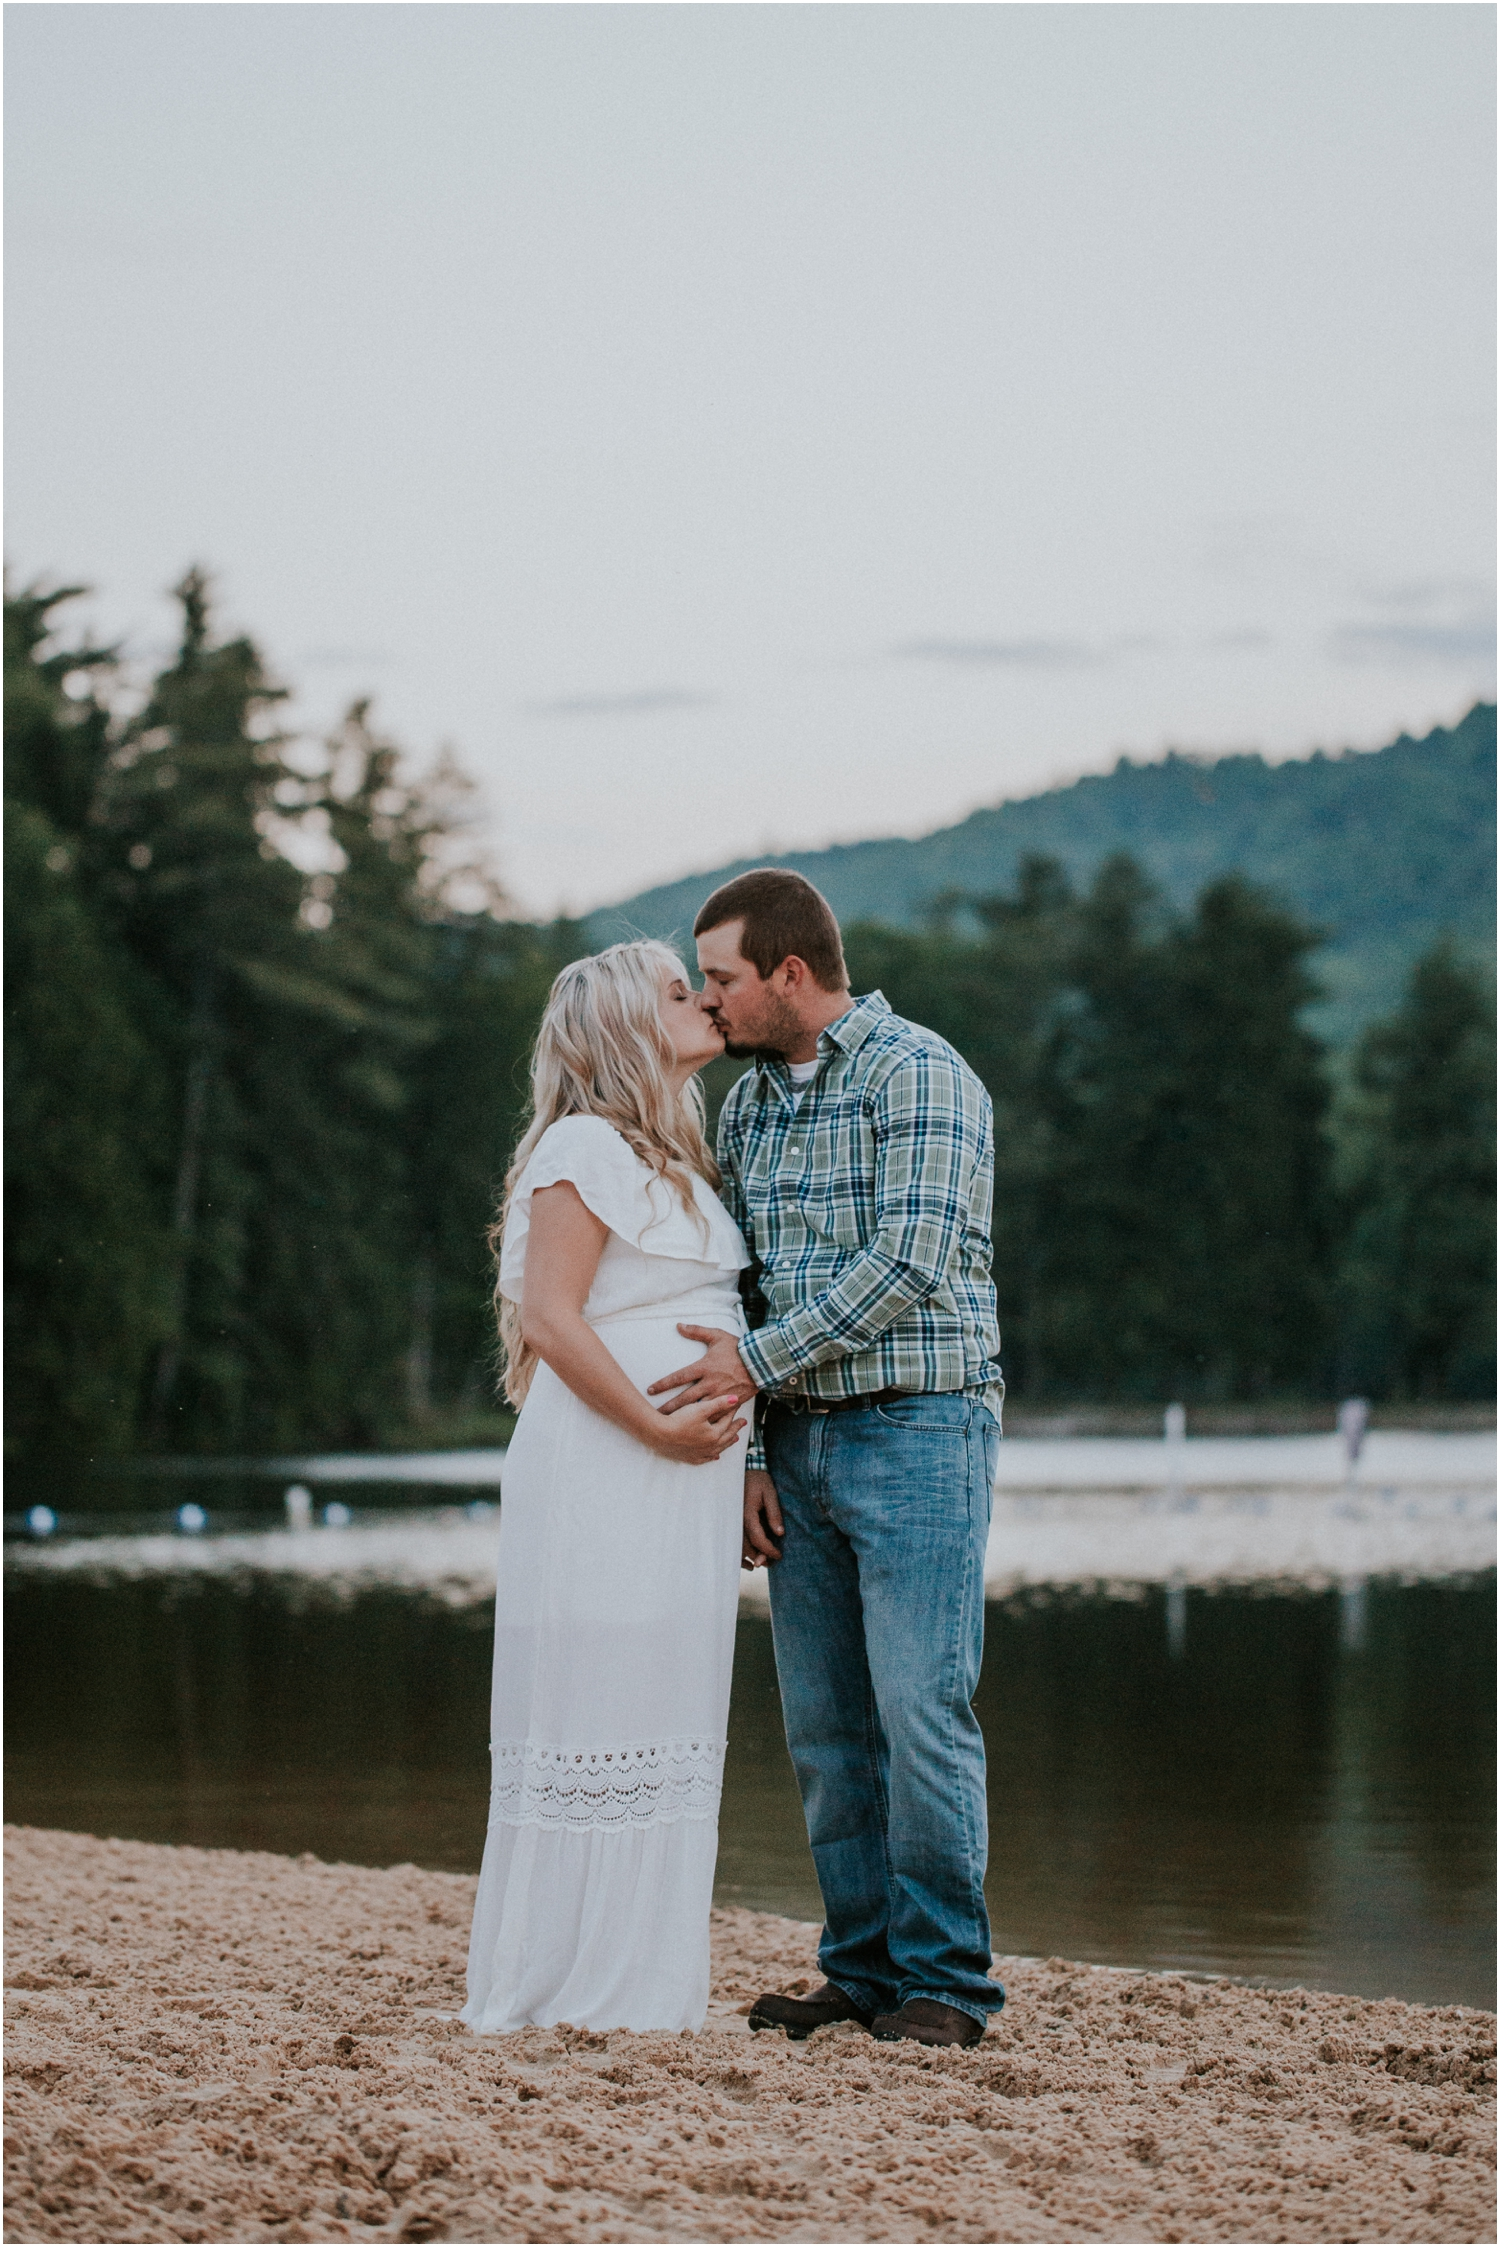 katy-sergent-photography-johnson-city-tennessee-northest-tn-elopement-intimate-wedding-photographer-outdoors-adventurous-couples-adventure-lovers_0035.jpg